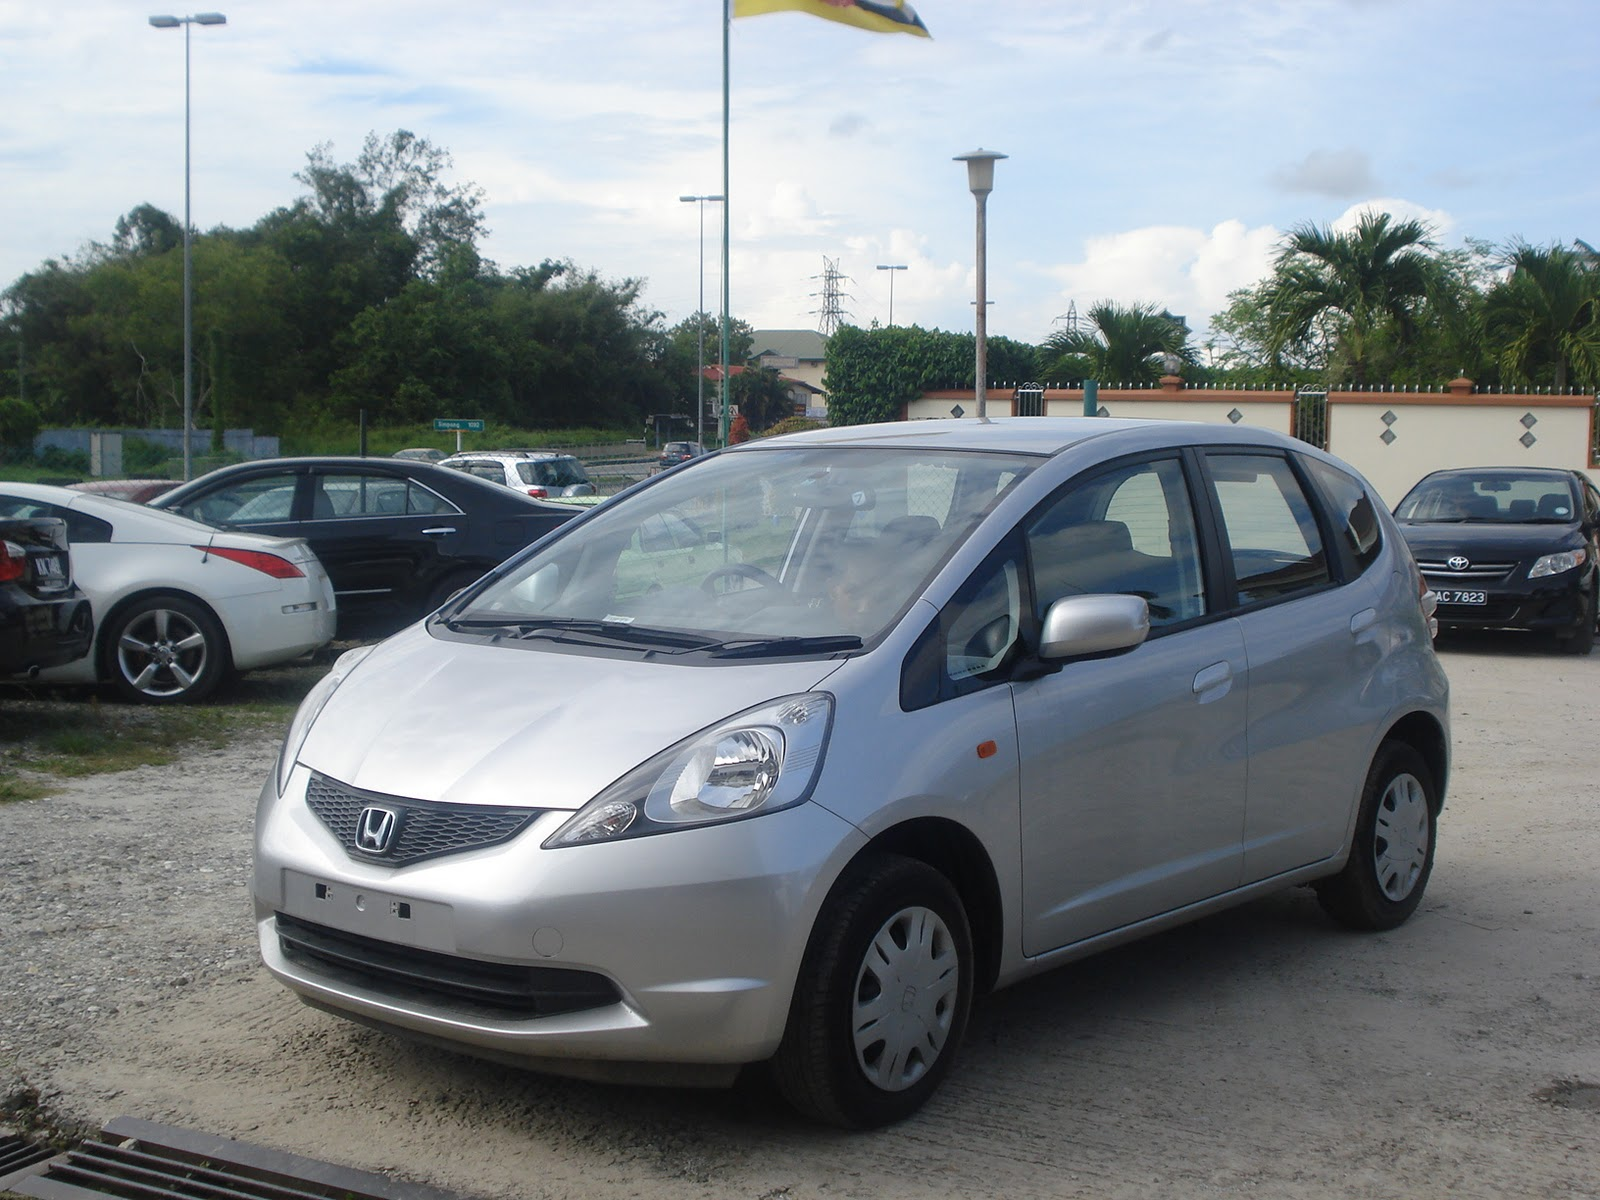 Used Cars Cheap: The Best Quality Cheap Used Car @Brunei: Cheap Car`s For Sale